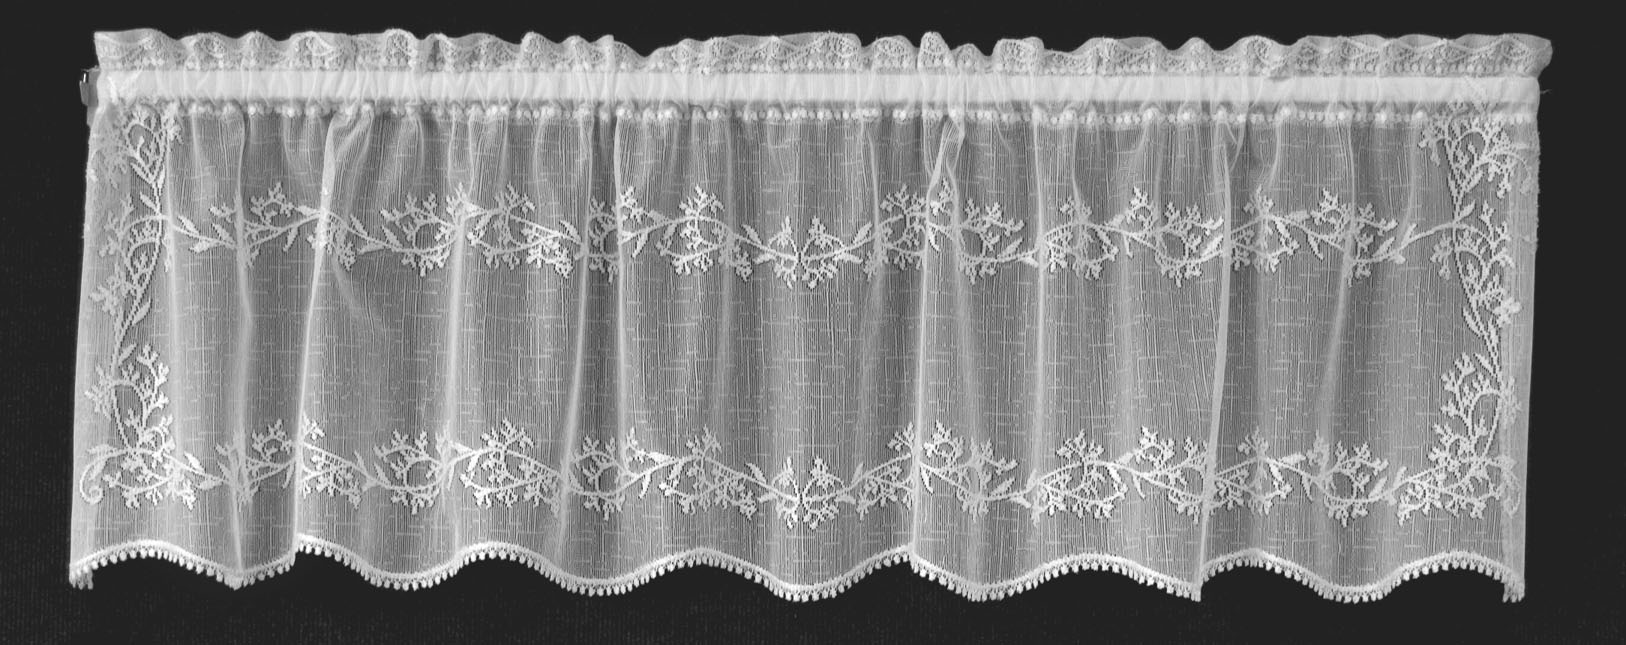 curtains brise in curtain tradition bise valance htm macrame ecru cafe lace bottom